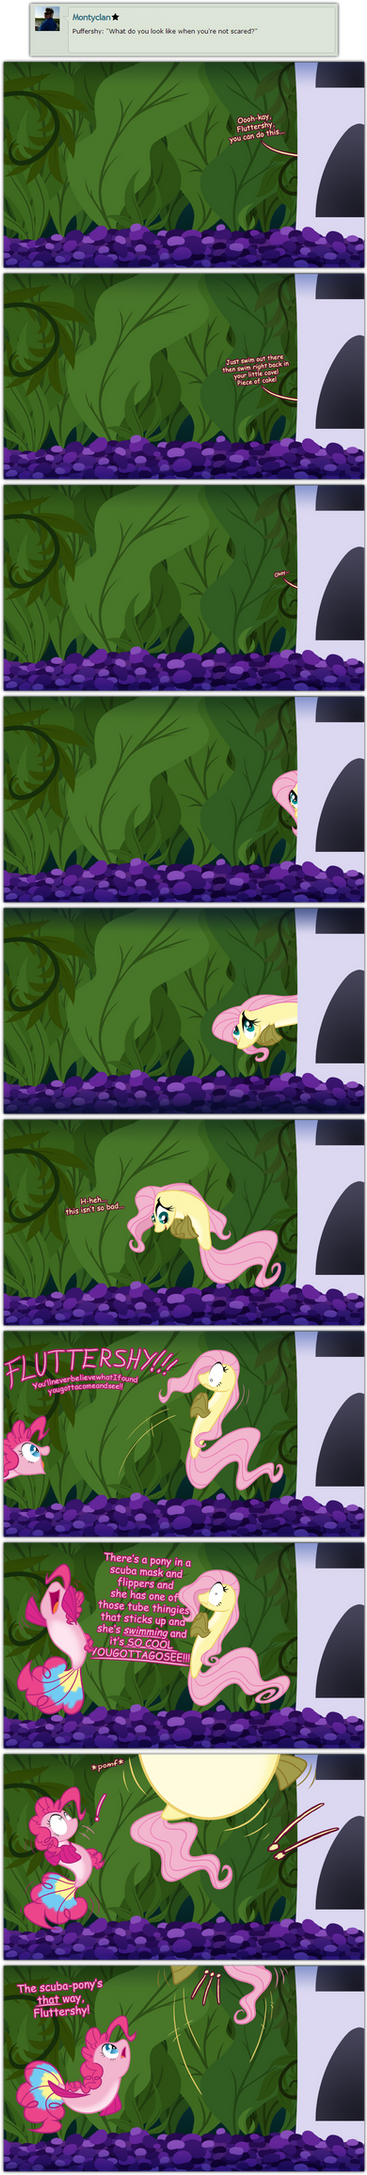 The Little Puffer That Couldn't by grievousfan